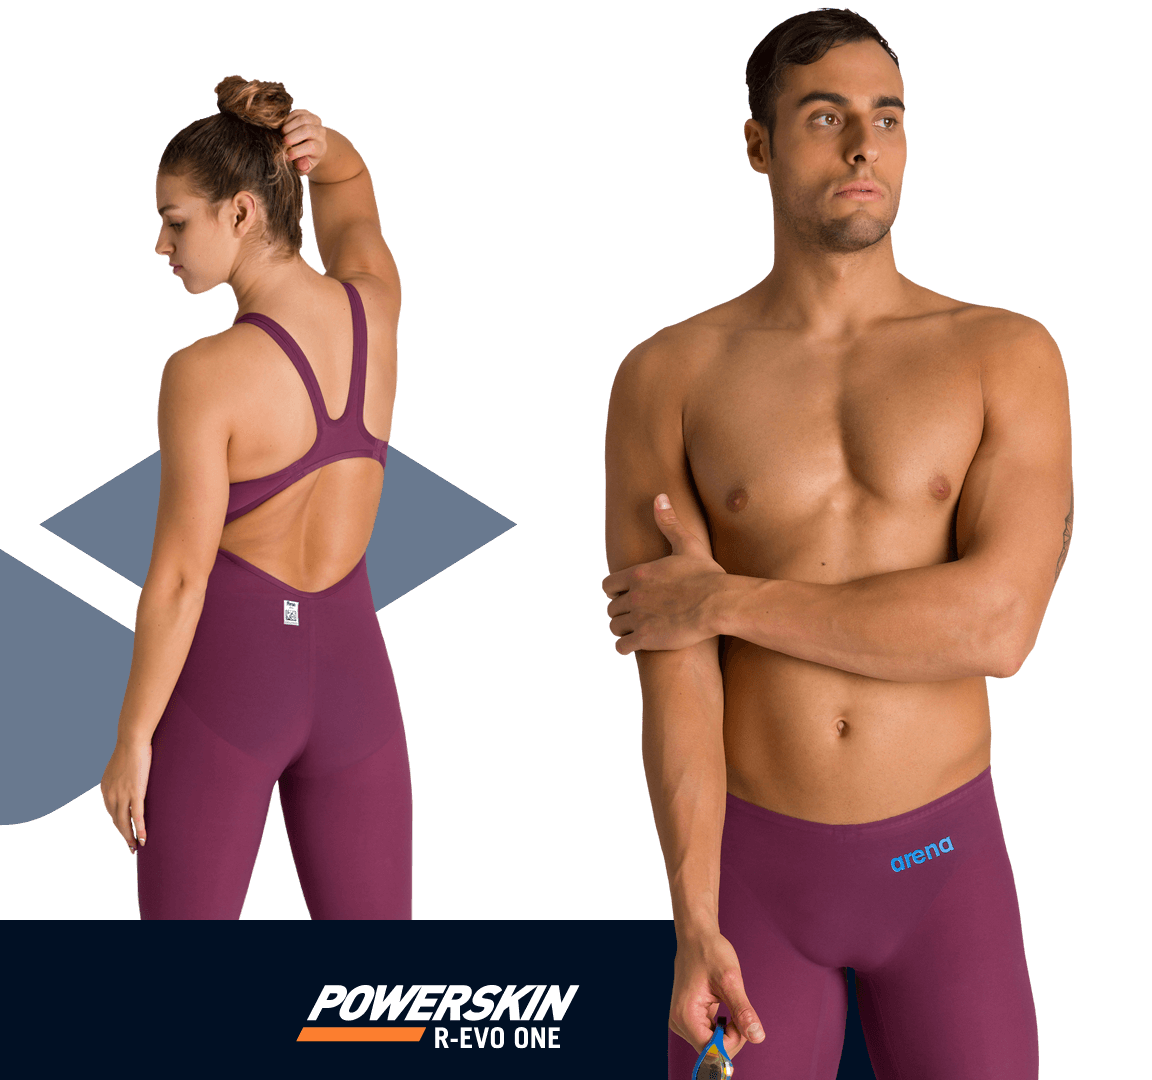 arena Powerskin R-Evo One race suit